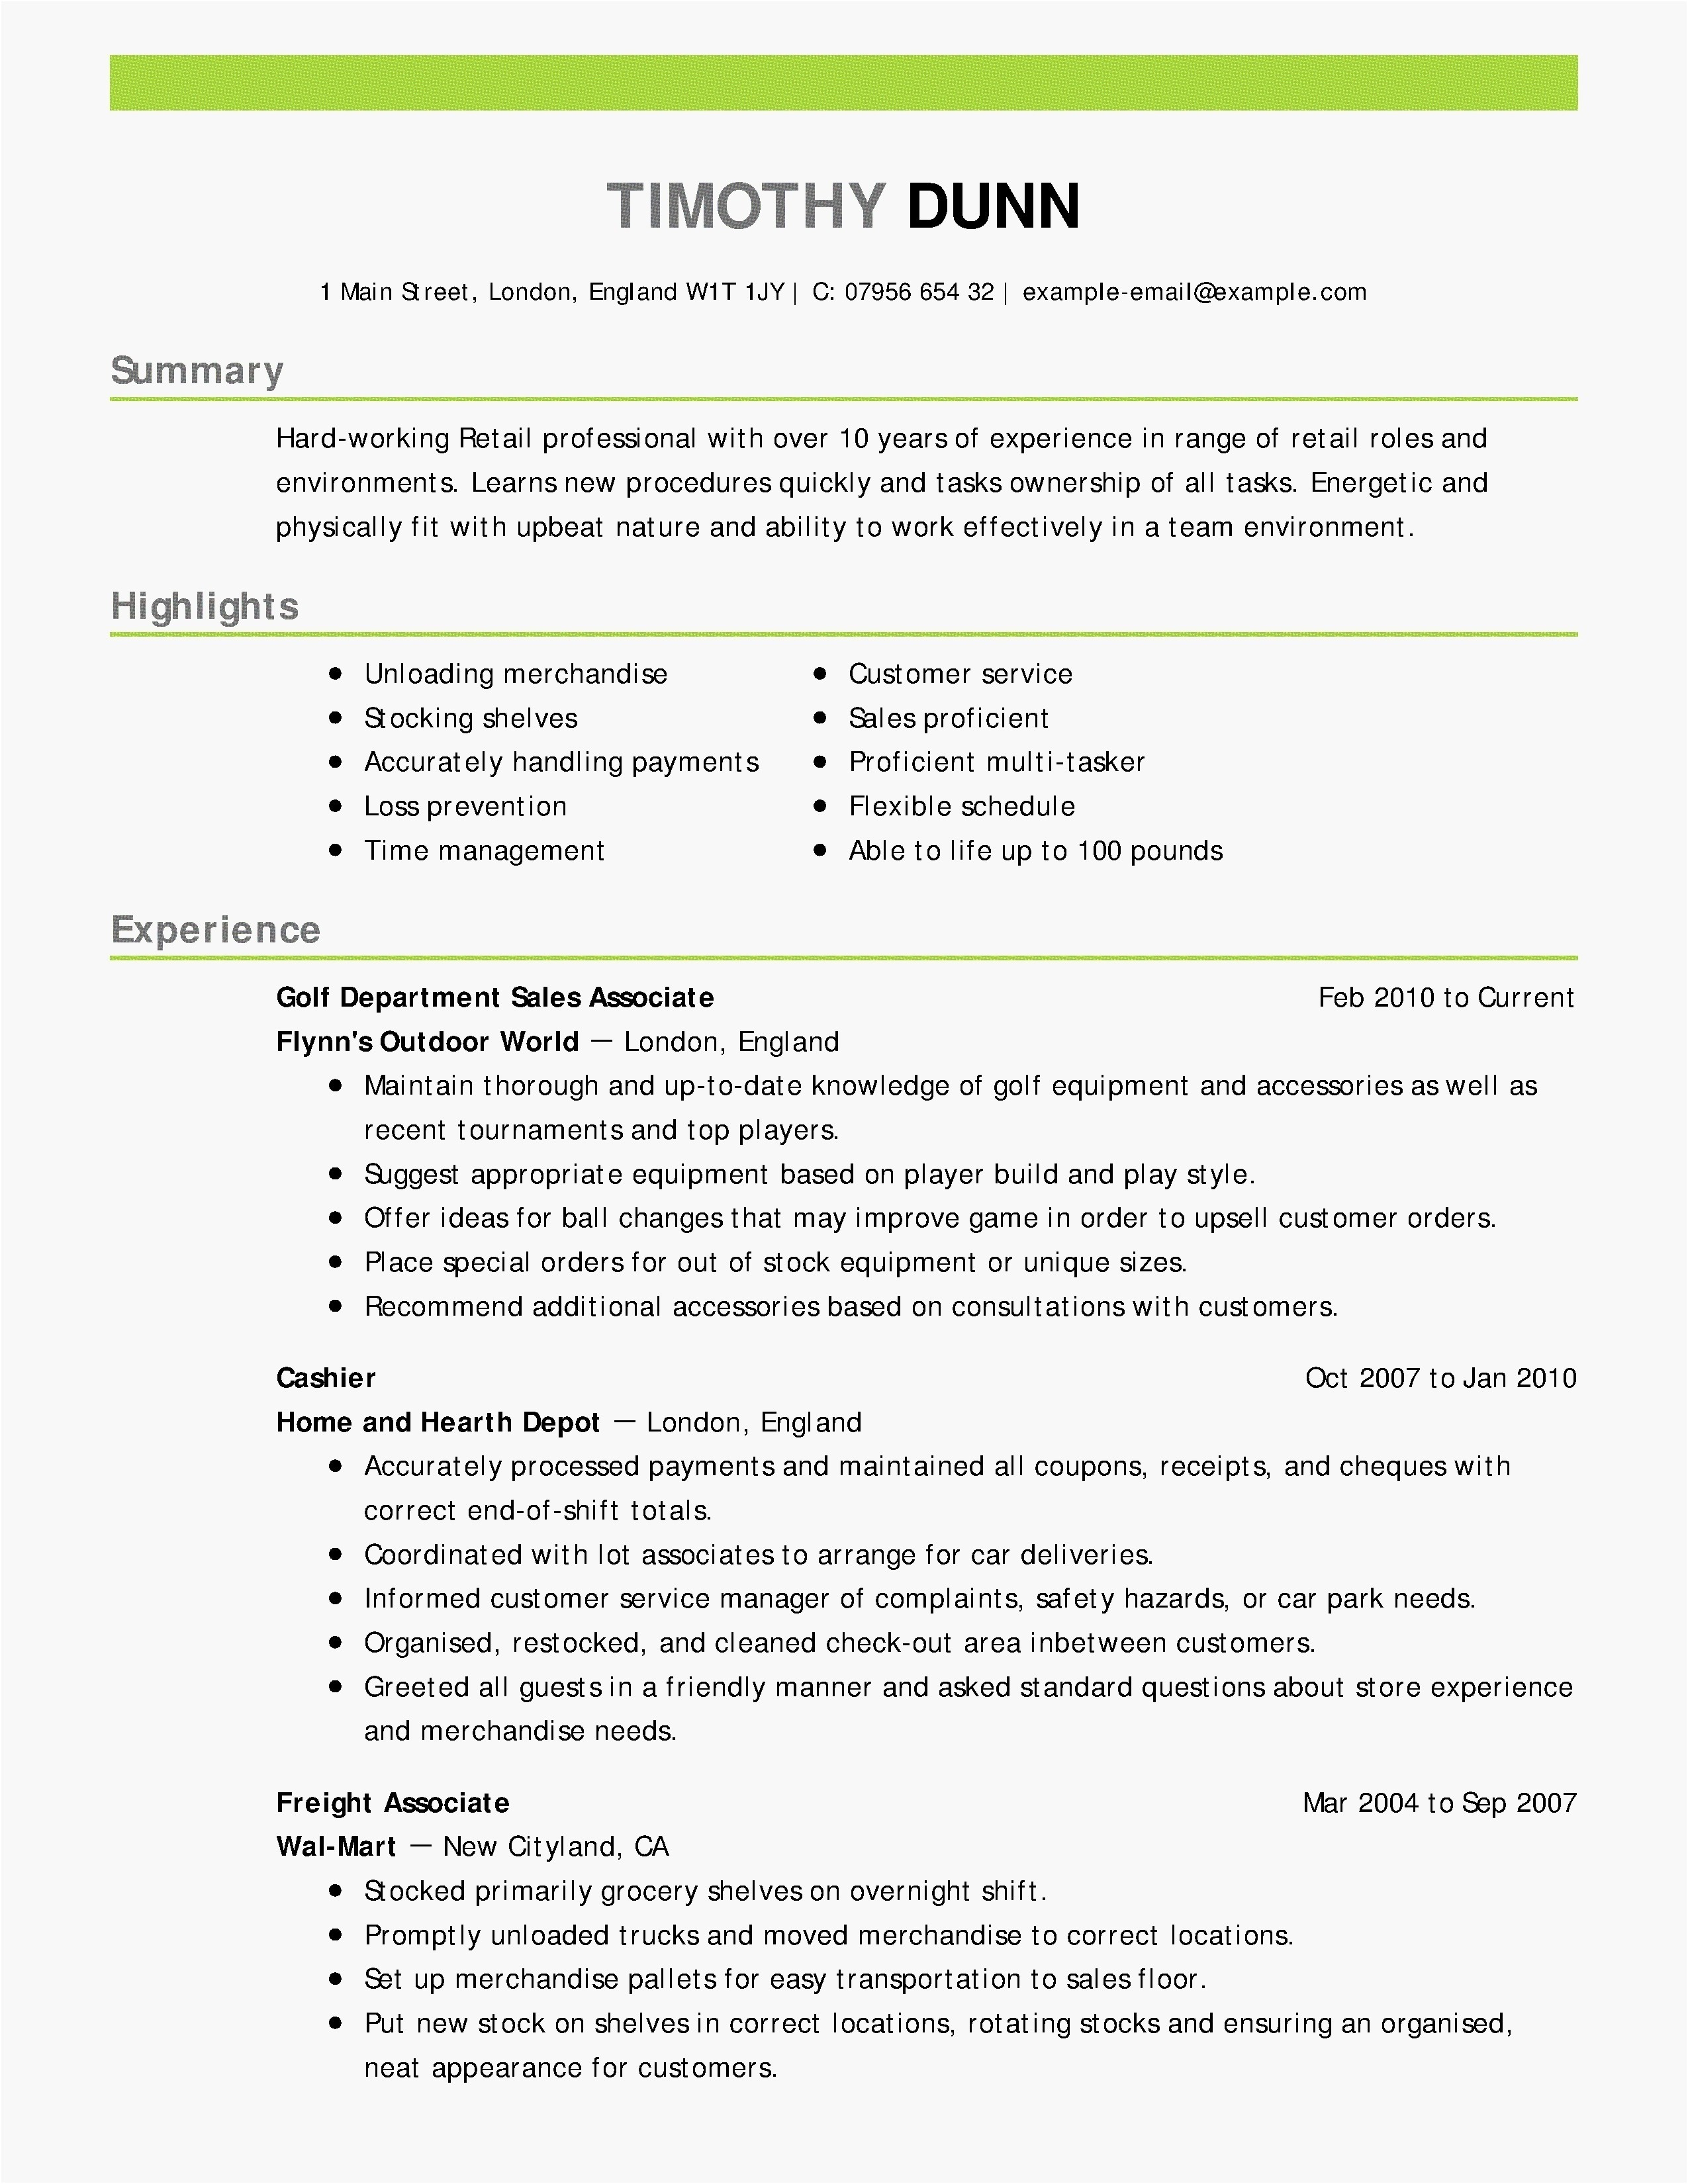 Picture Of A Resume - Cover Letter End Refrence Fix My Resume Lovely Fresh Entry Level